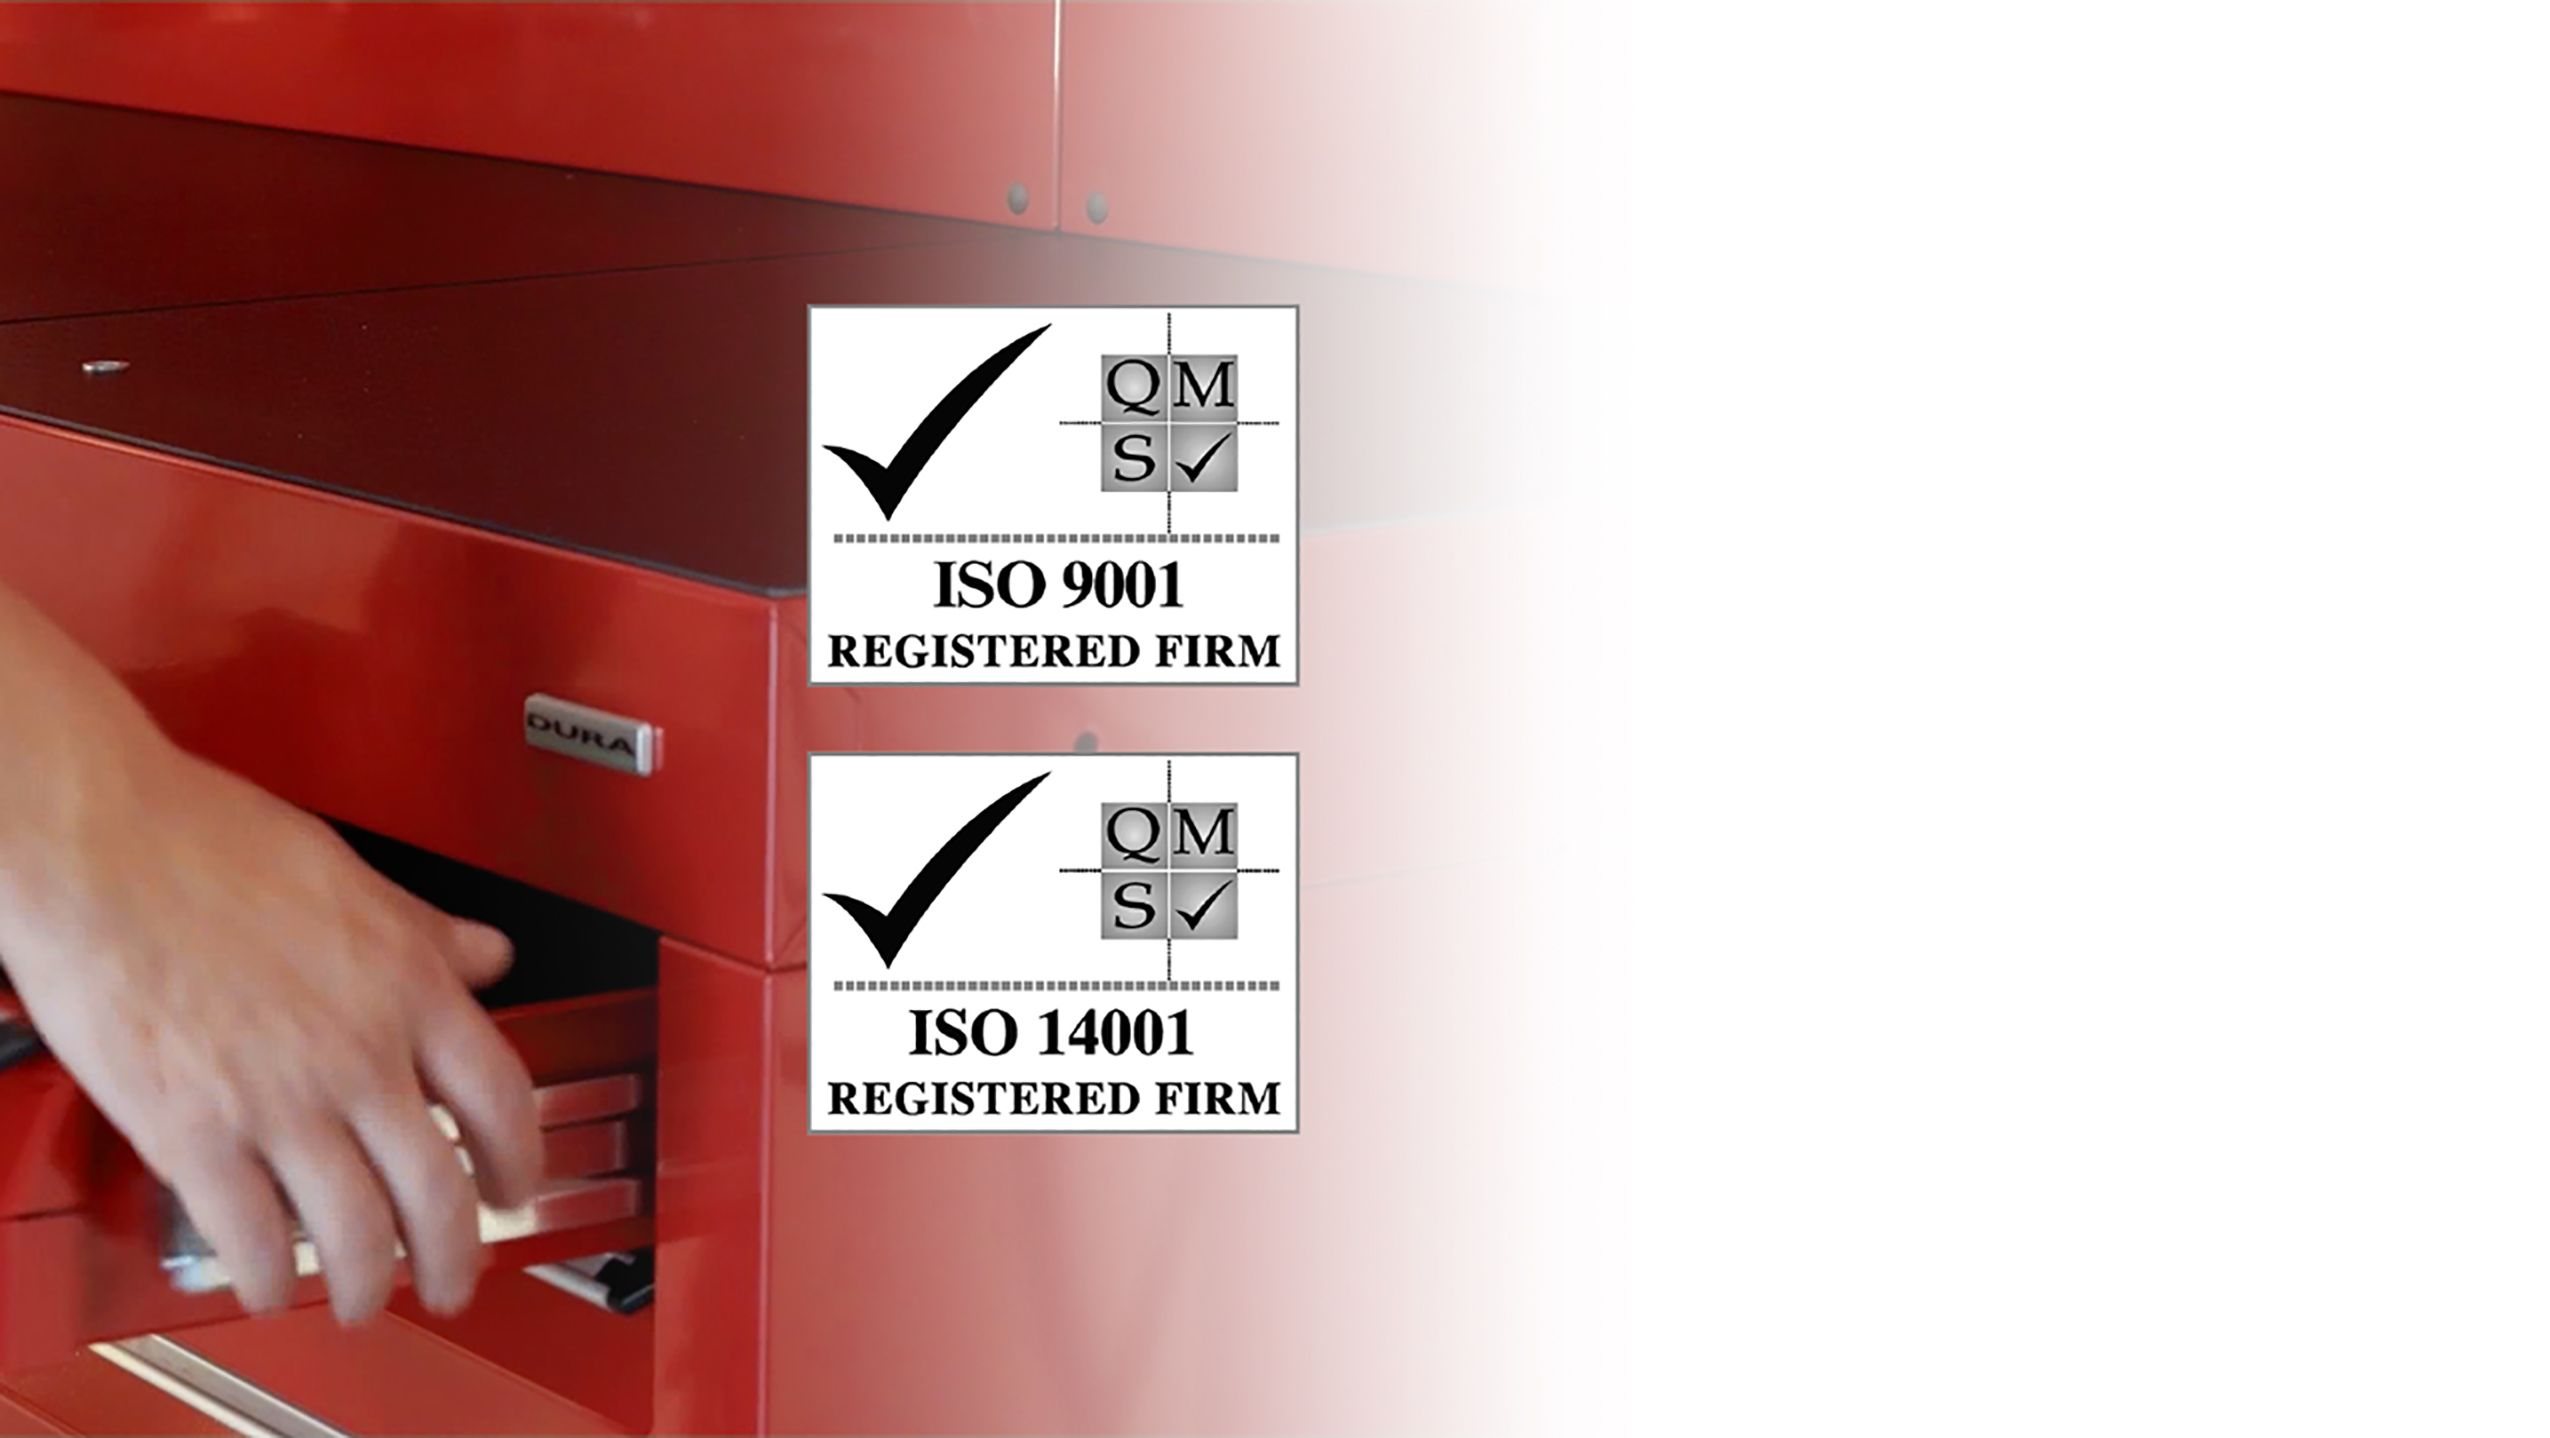 Drawer opening on red tool cabinets with ISO 9001/14001 logos